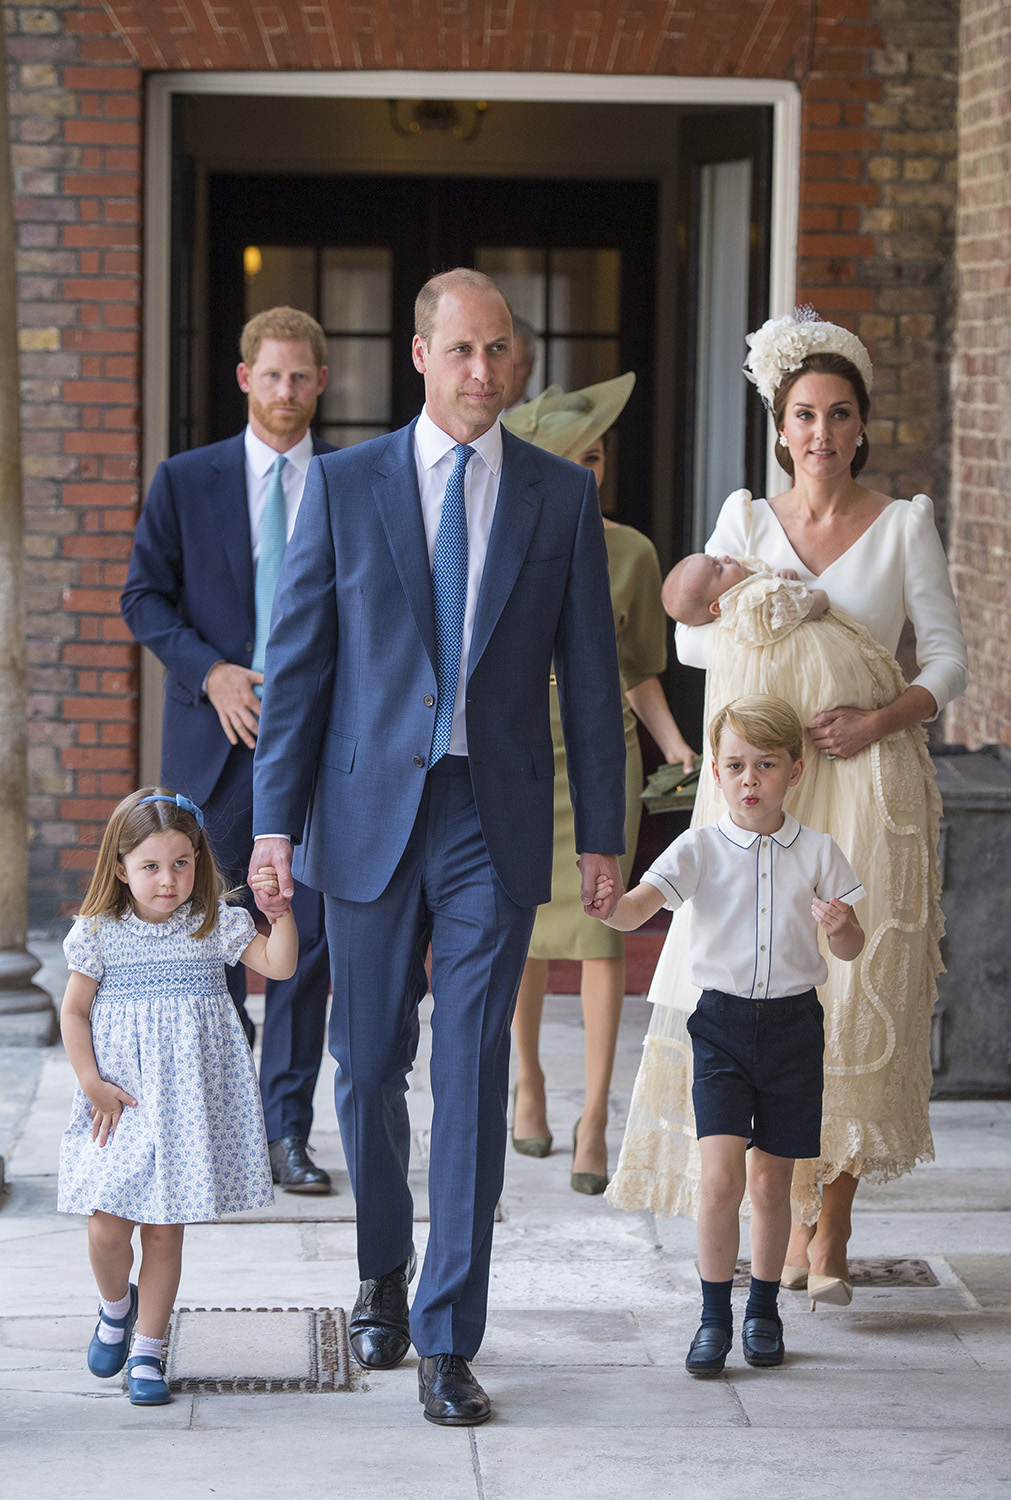 "<div class=""meta image-caption""><div class=""origin-logo origin-image none""><span>none</span></div><span class=""caption-text"">Princess Charlotte and Prince George hold the hands of their father Prince William while Kate, Duchess of Cambridge holds Prince Louis as they arrive for his christening service. (Dominic Lipinski/Pool Photo via AP)</span></div>"